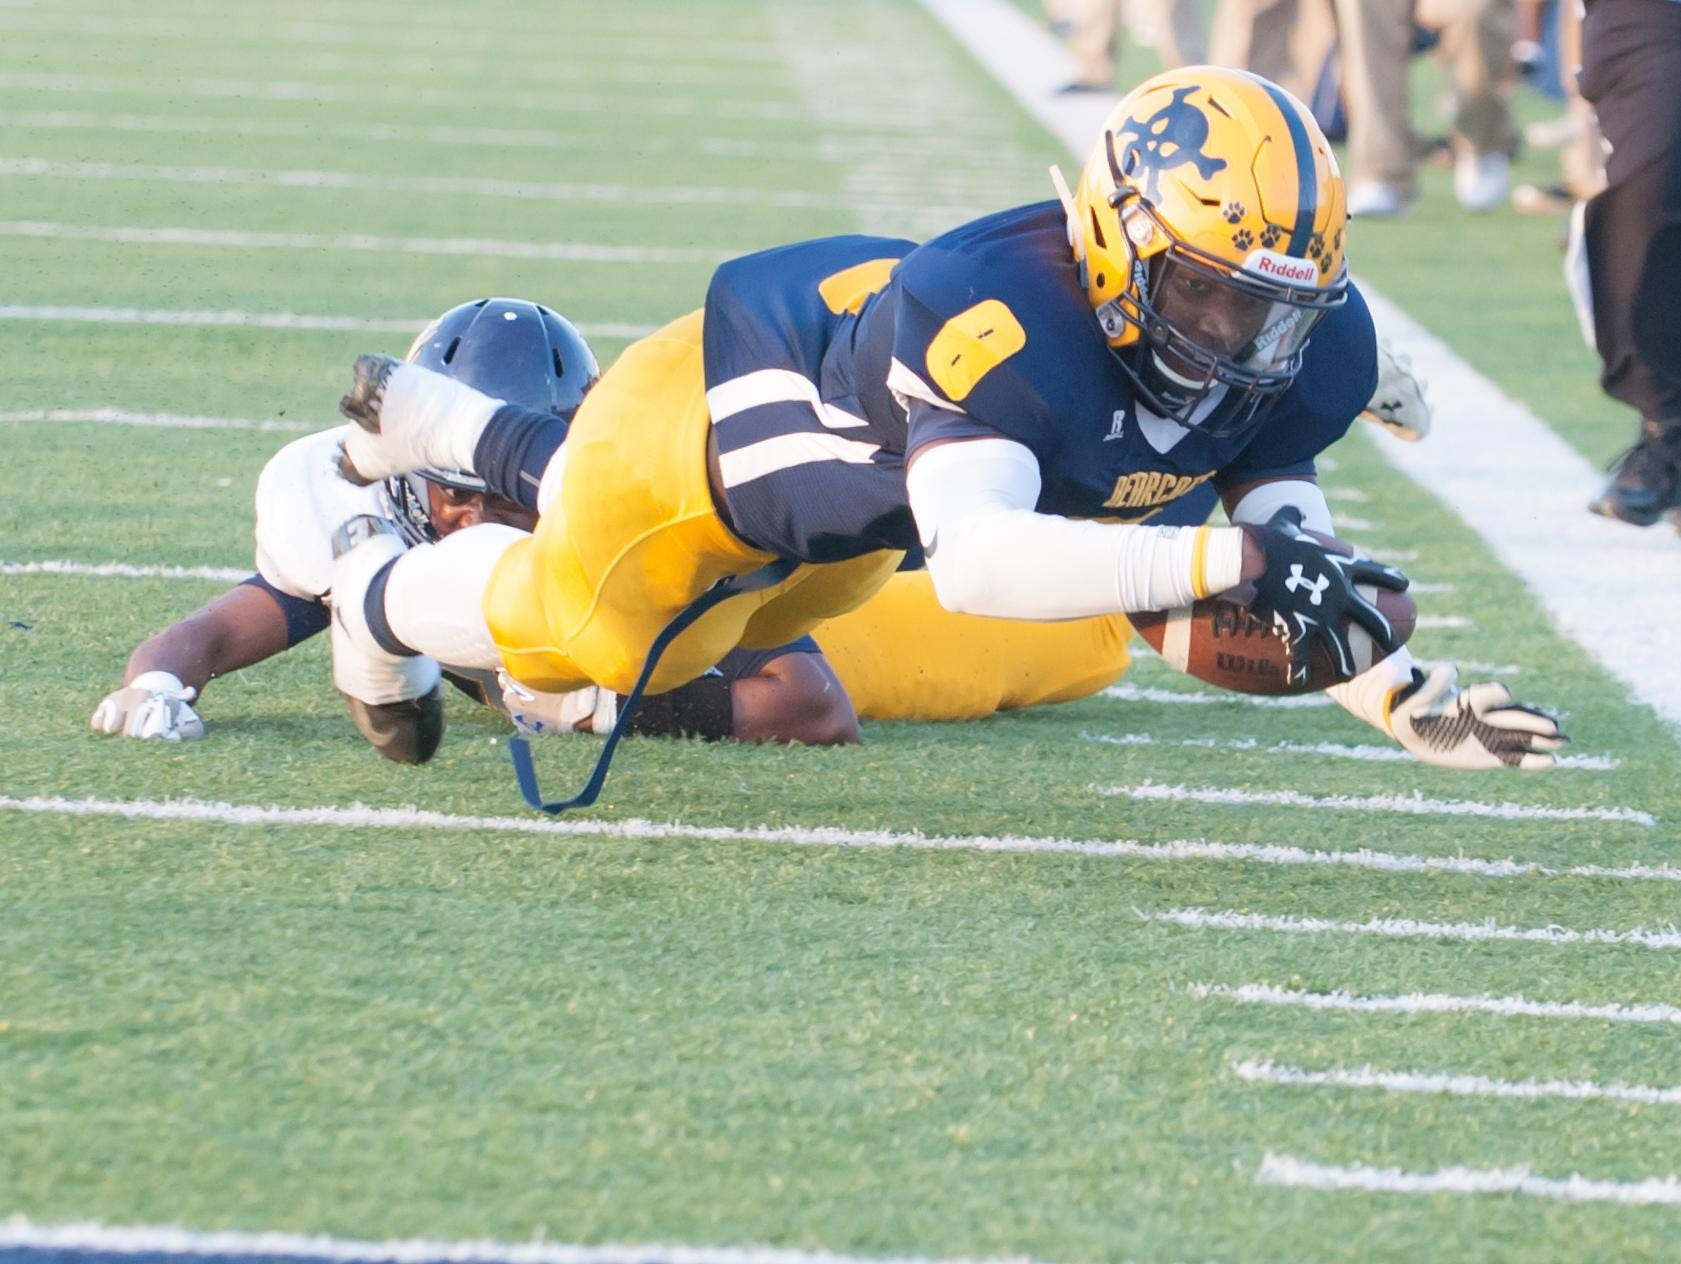 BCC QB Dennis Watson stretches for the goal line, but comes up short early in the first quarter.